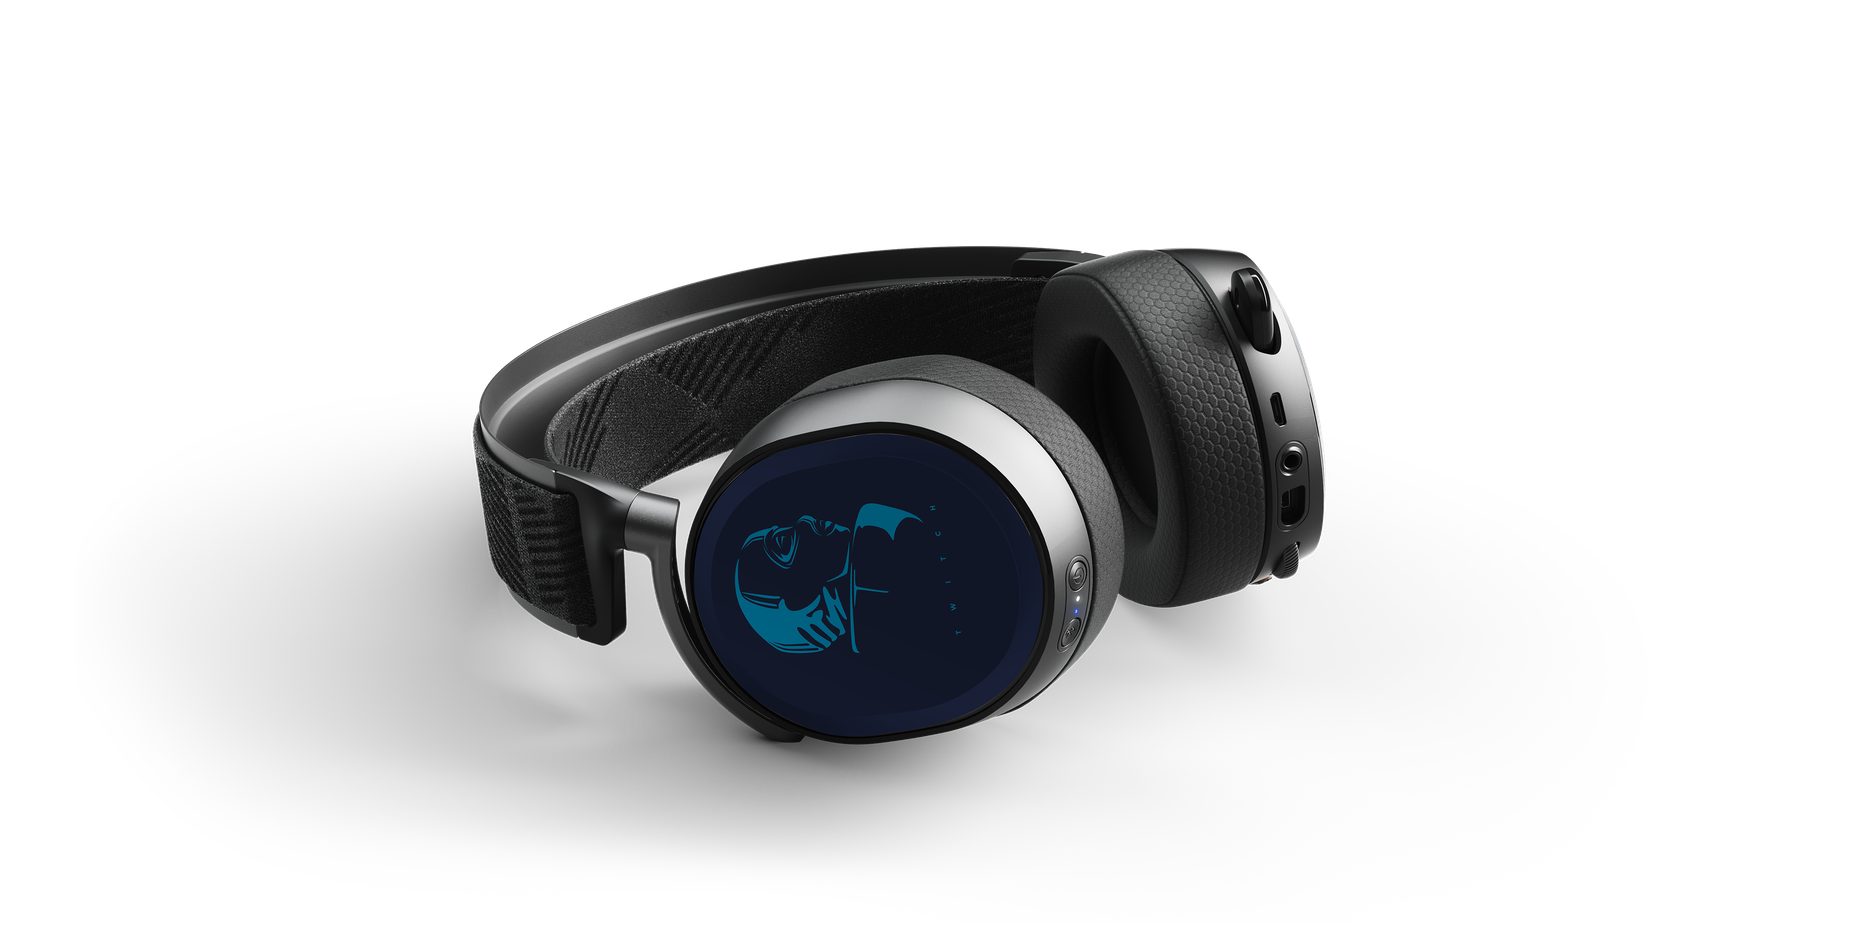 Headset render with Rainbow Six speaker plates on each side of the earcup